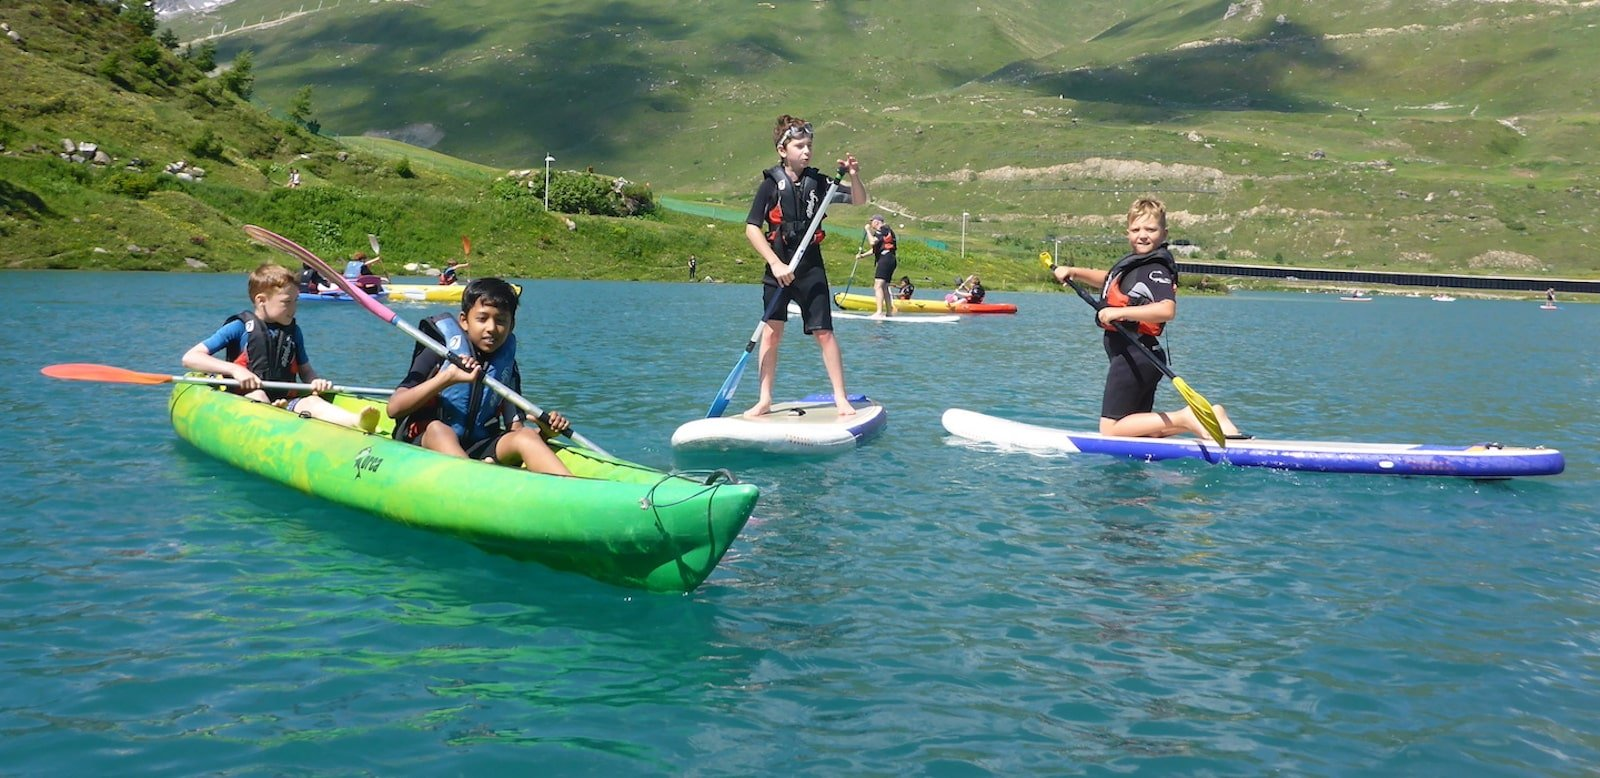 Paddling in Alps